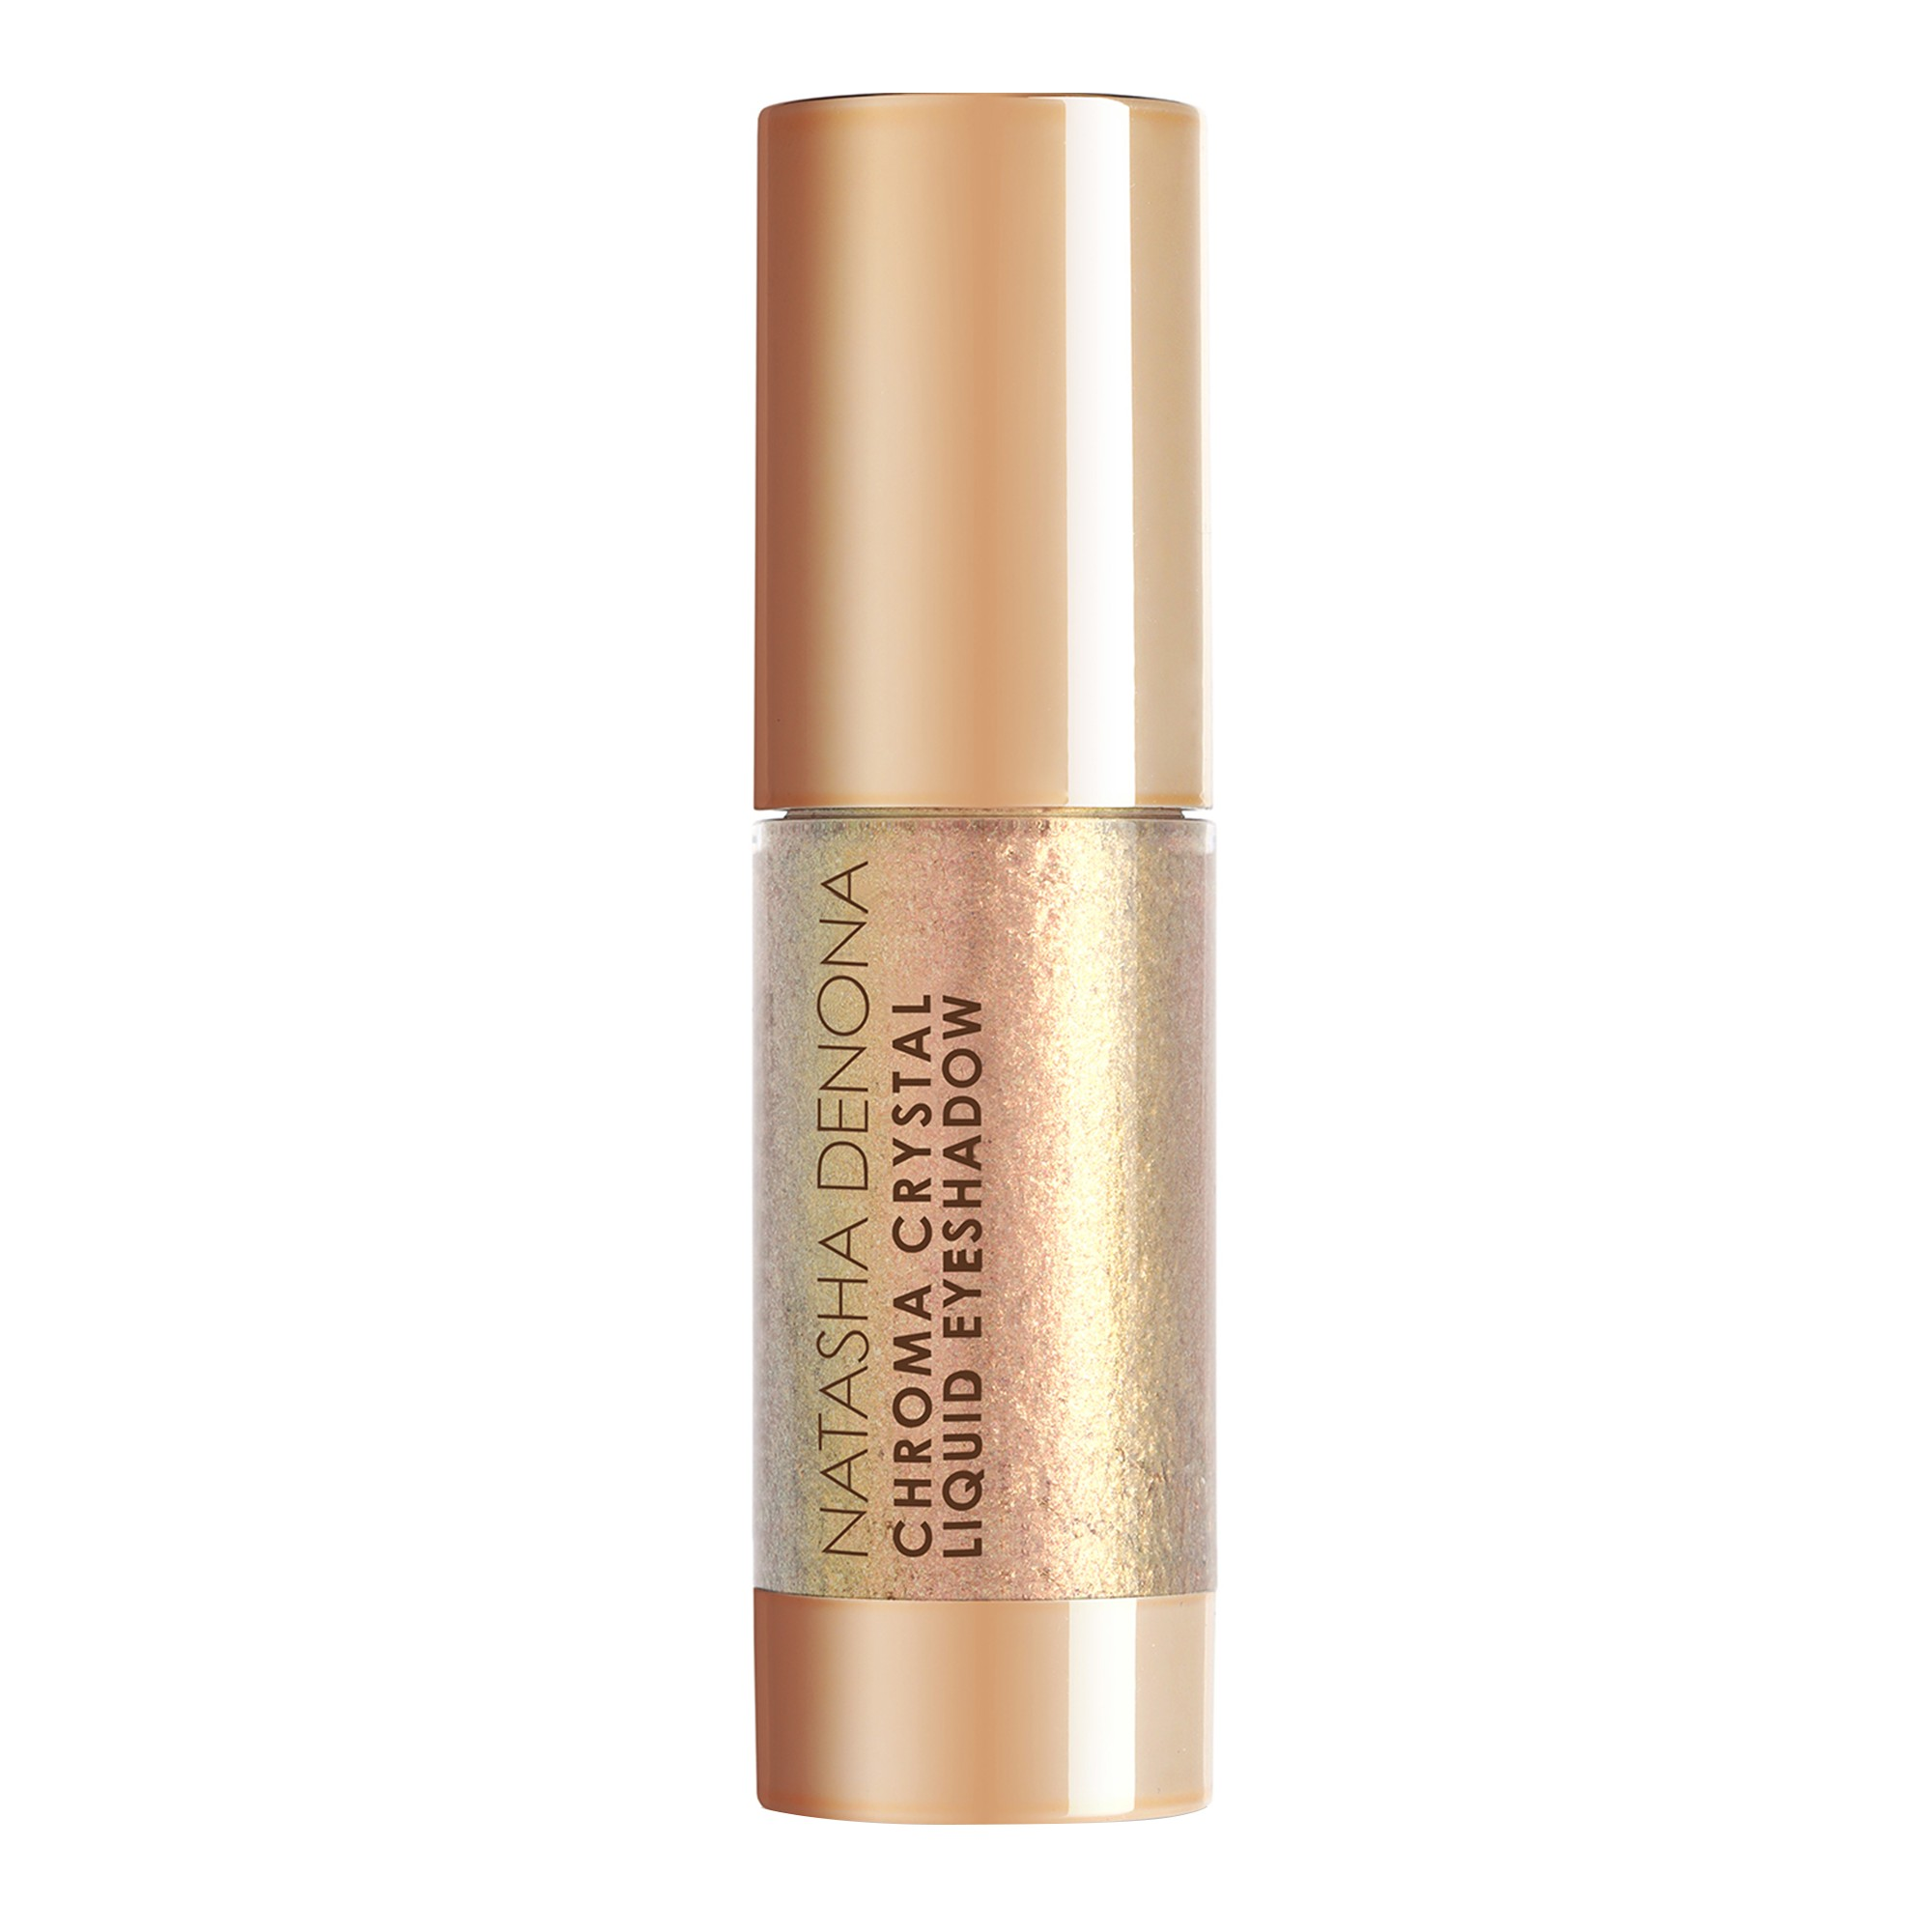 Natasha Denona Chroma Crystal Liquid Eyeshadow Zone